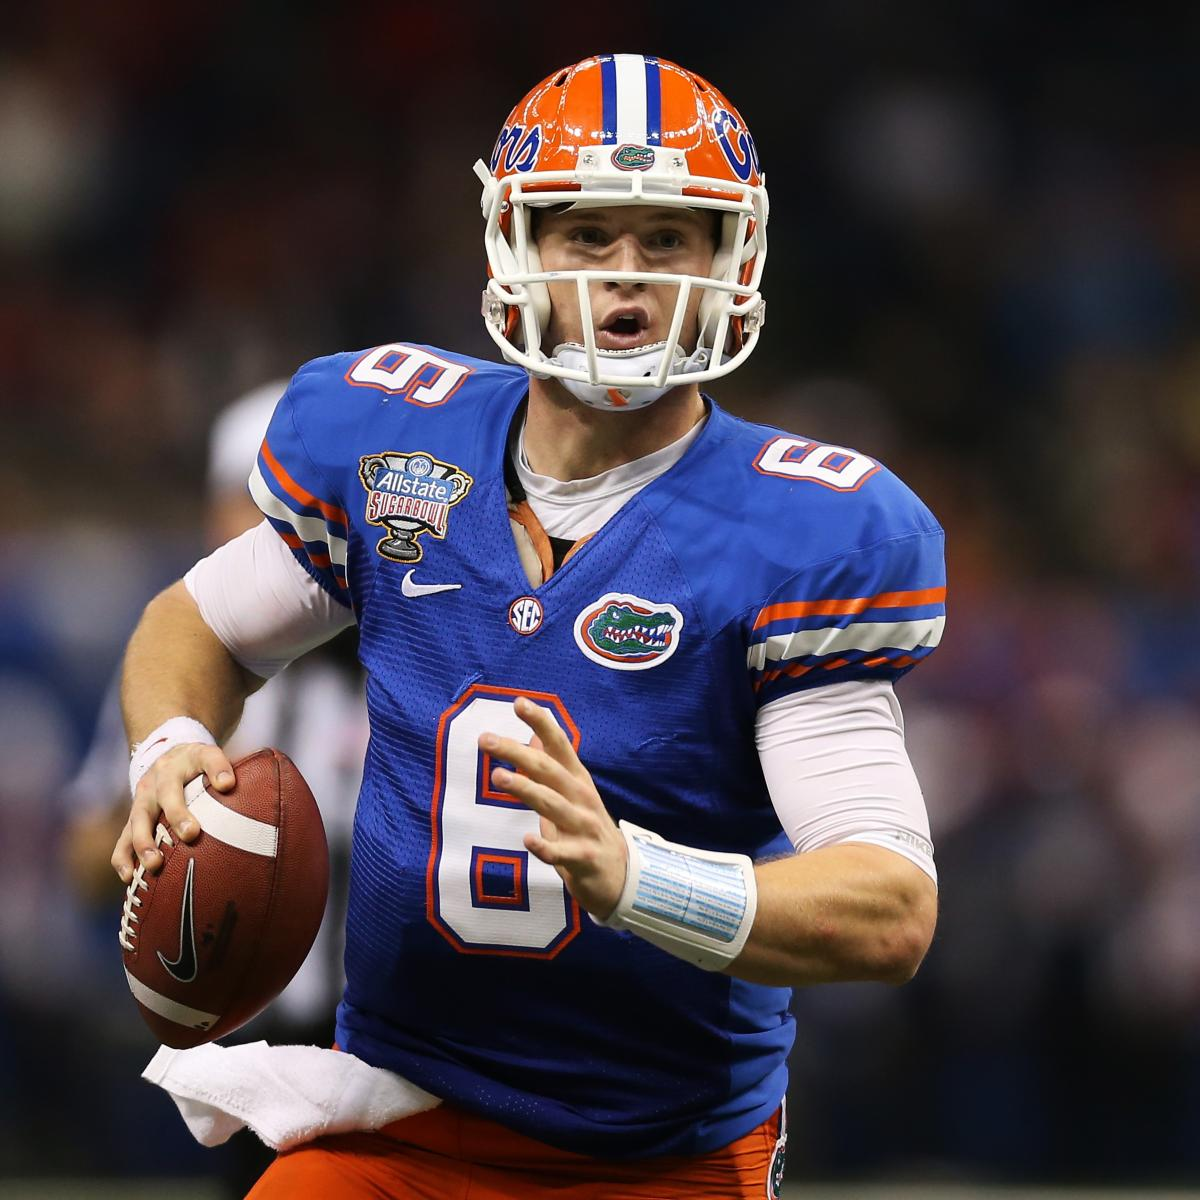 Florida Gators QB Jeff Driskel Has Appendectomy Surgery ...